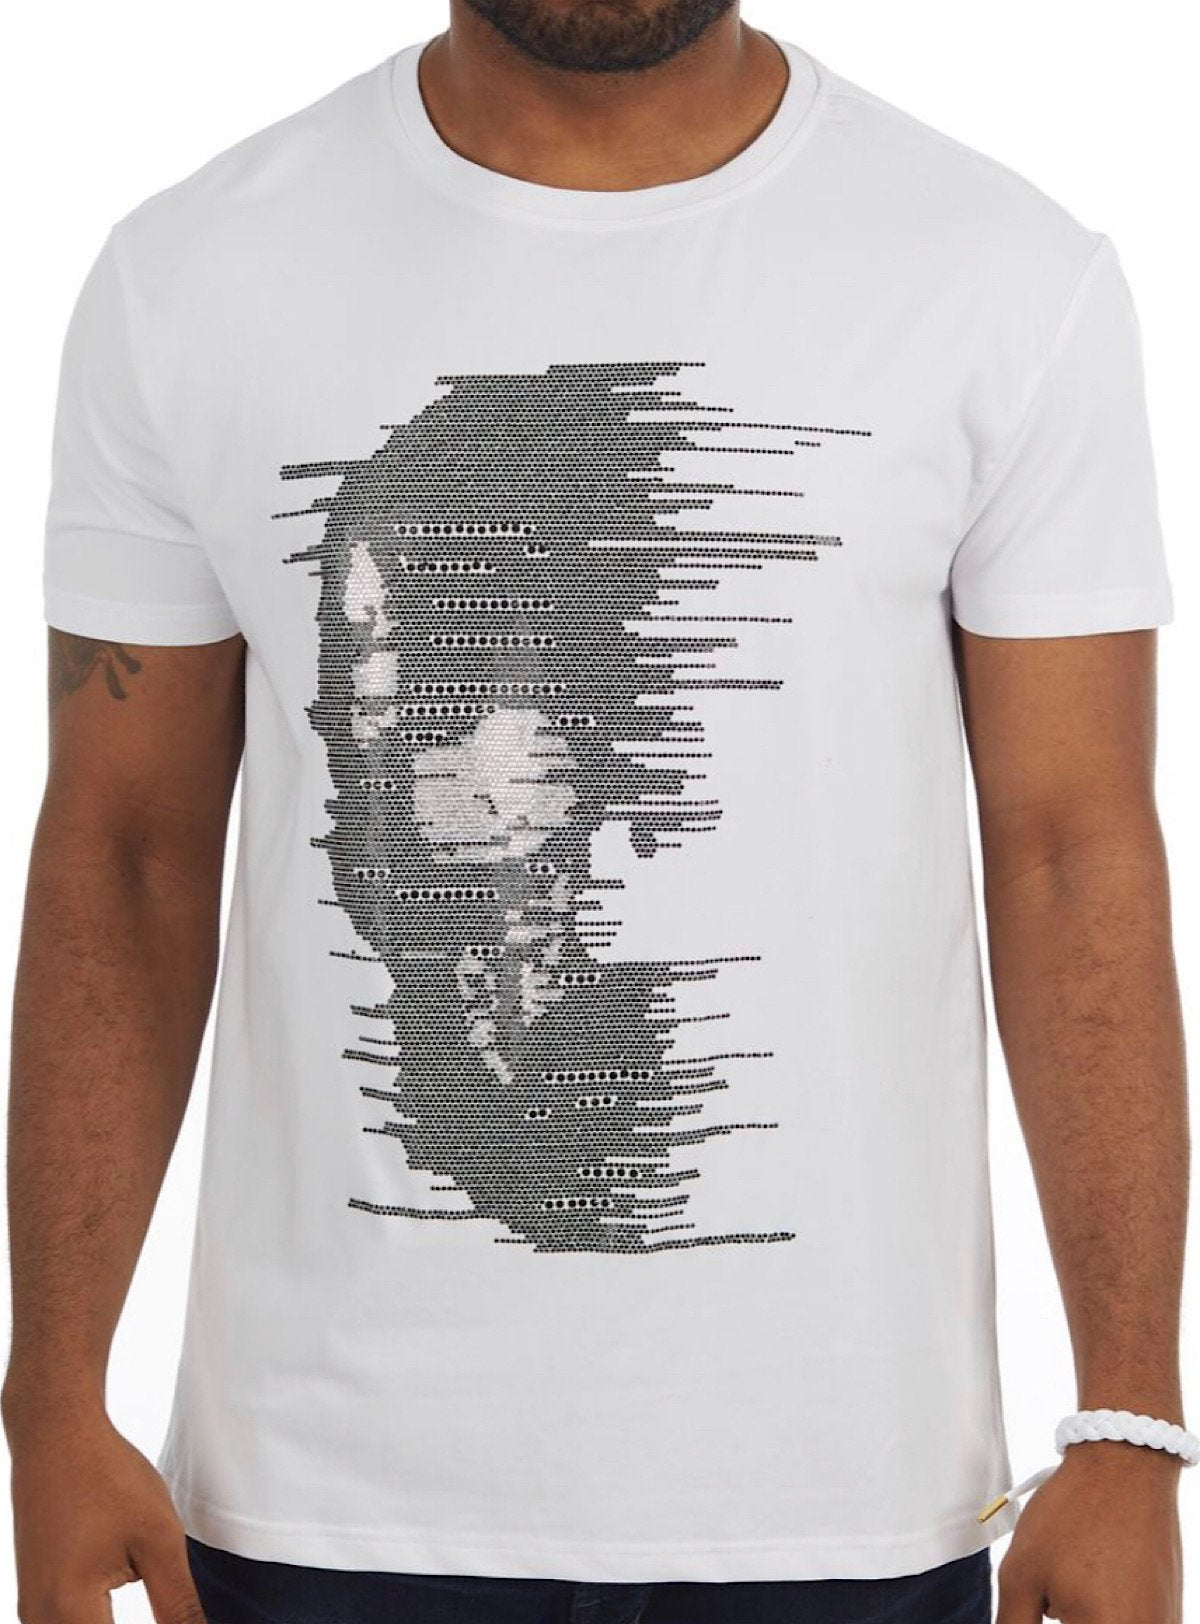 Heads Or Tails T-Shirt - Half Skull - White - 28203